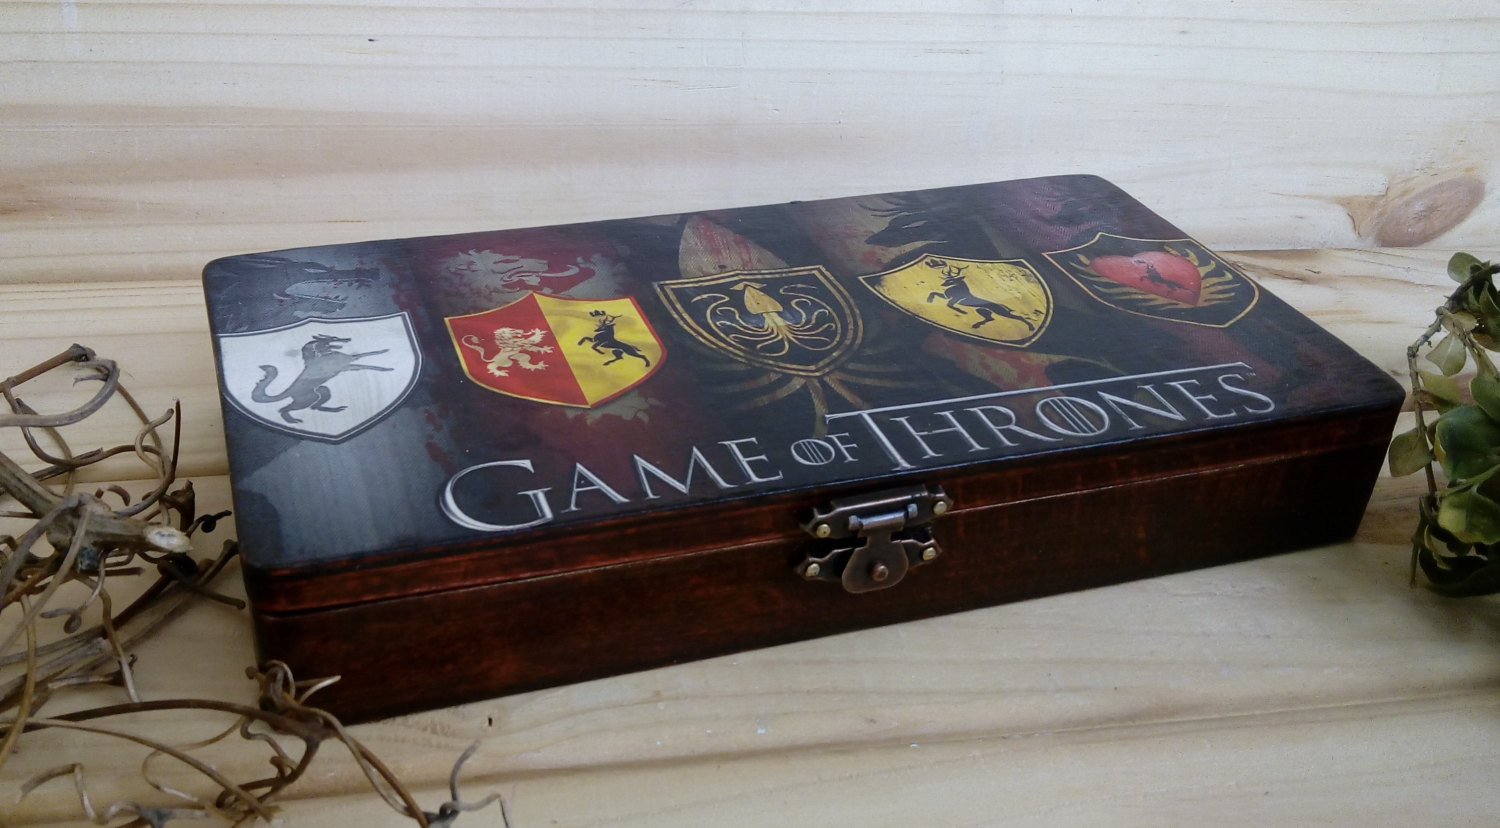 Best ideas about Game Of Thrones Gift Ideas For Him . Save or Pin Game of Thrones box Gift for men wooden box Money box Gift for Now.